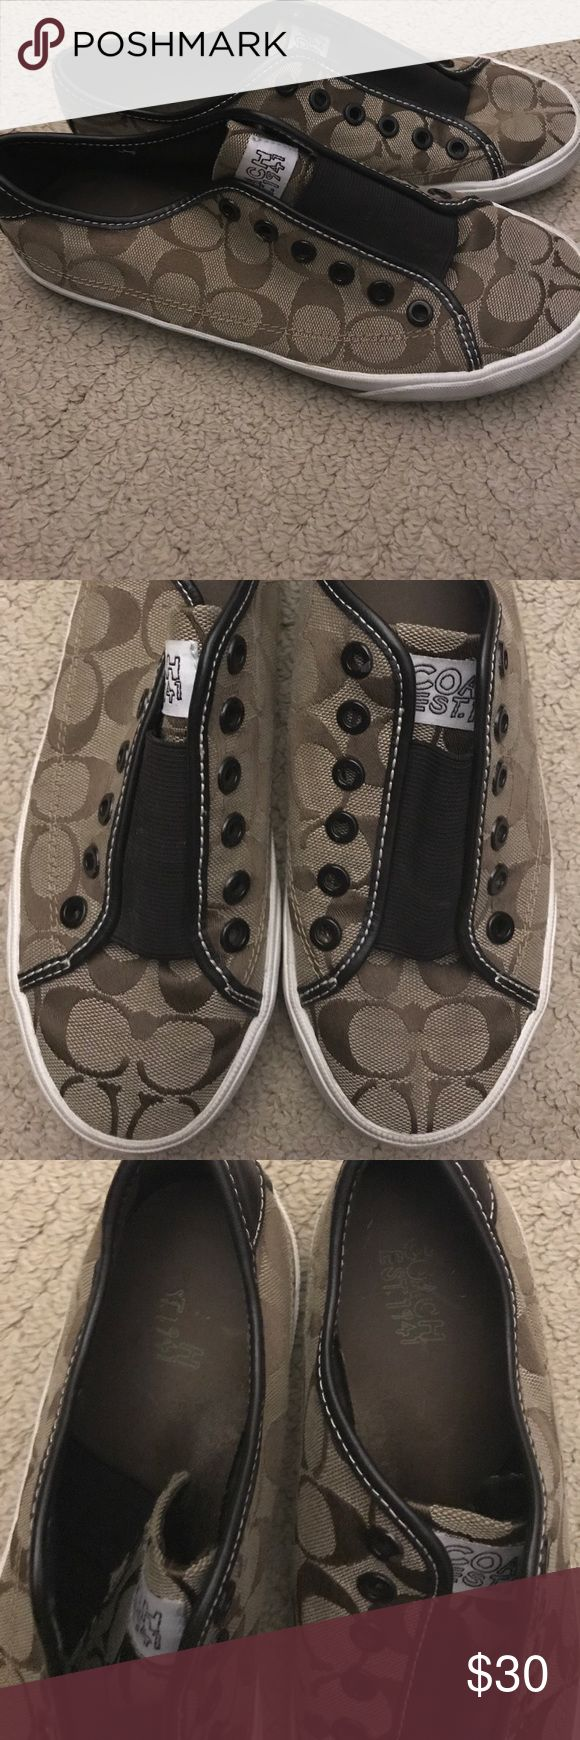 Coach Tennis Shoes 😻 Size 8 women's coach tennis shoes. Have seen some wear but still have some life left in them. Slip on and go! Coach Shoes Sneakers